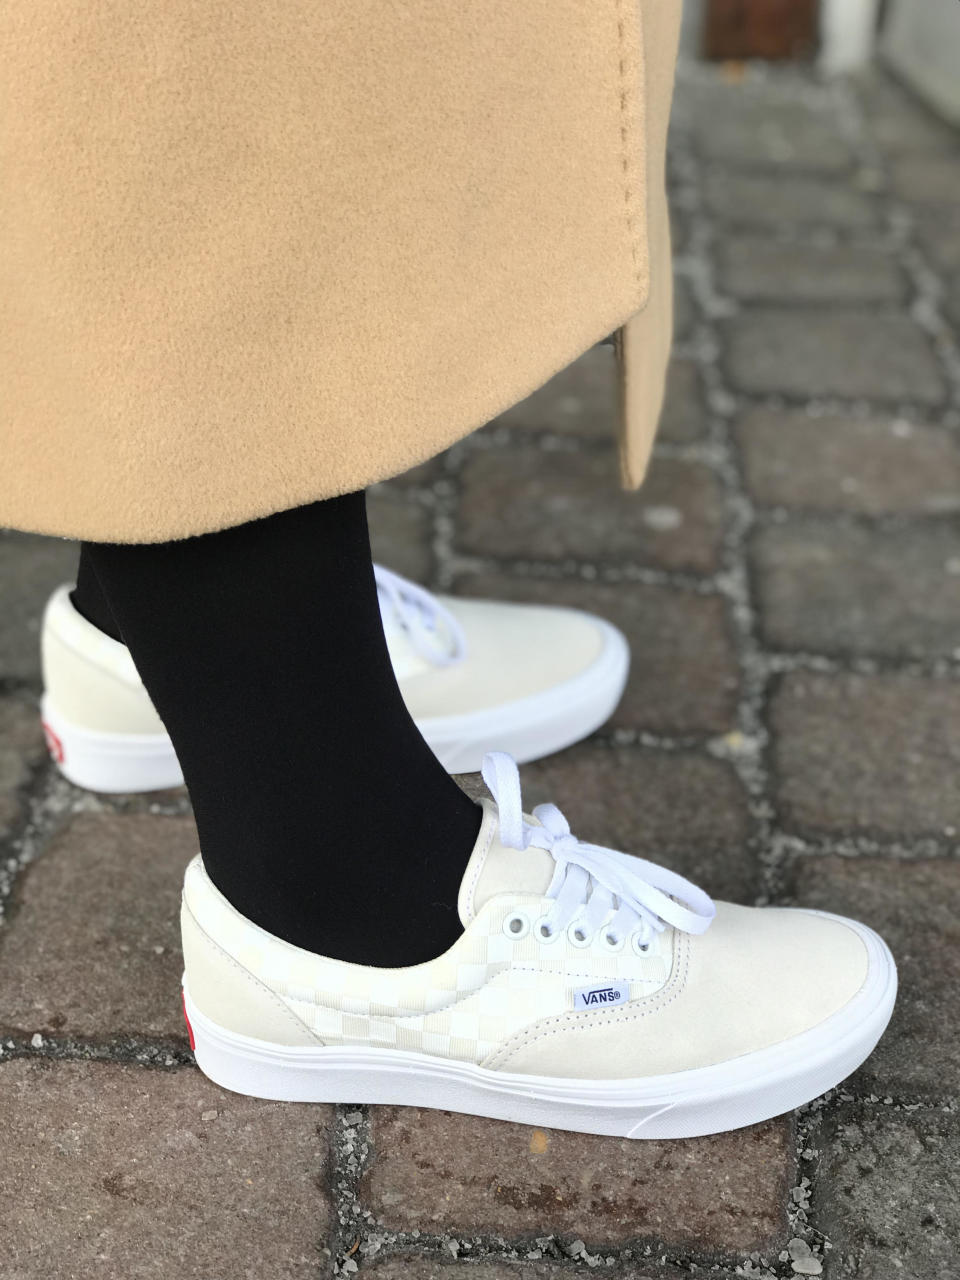 Julie Tong, Yahoo Lifestyle's fashion editor, tests out the new Vans ComfyCush Era sneakers in Syracuse, N.Y. (Photo: Julie Tong)